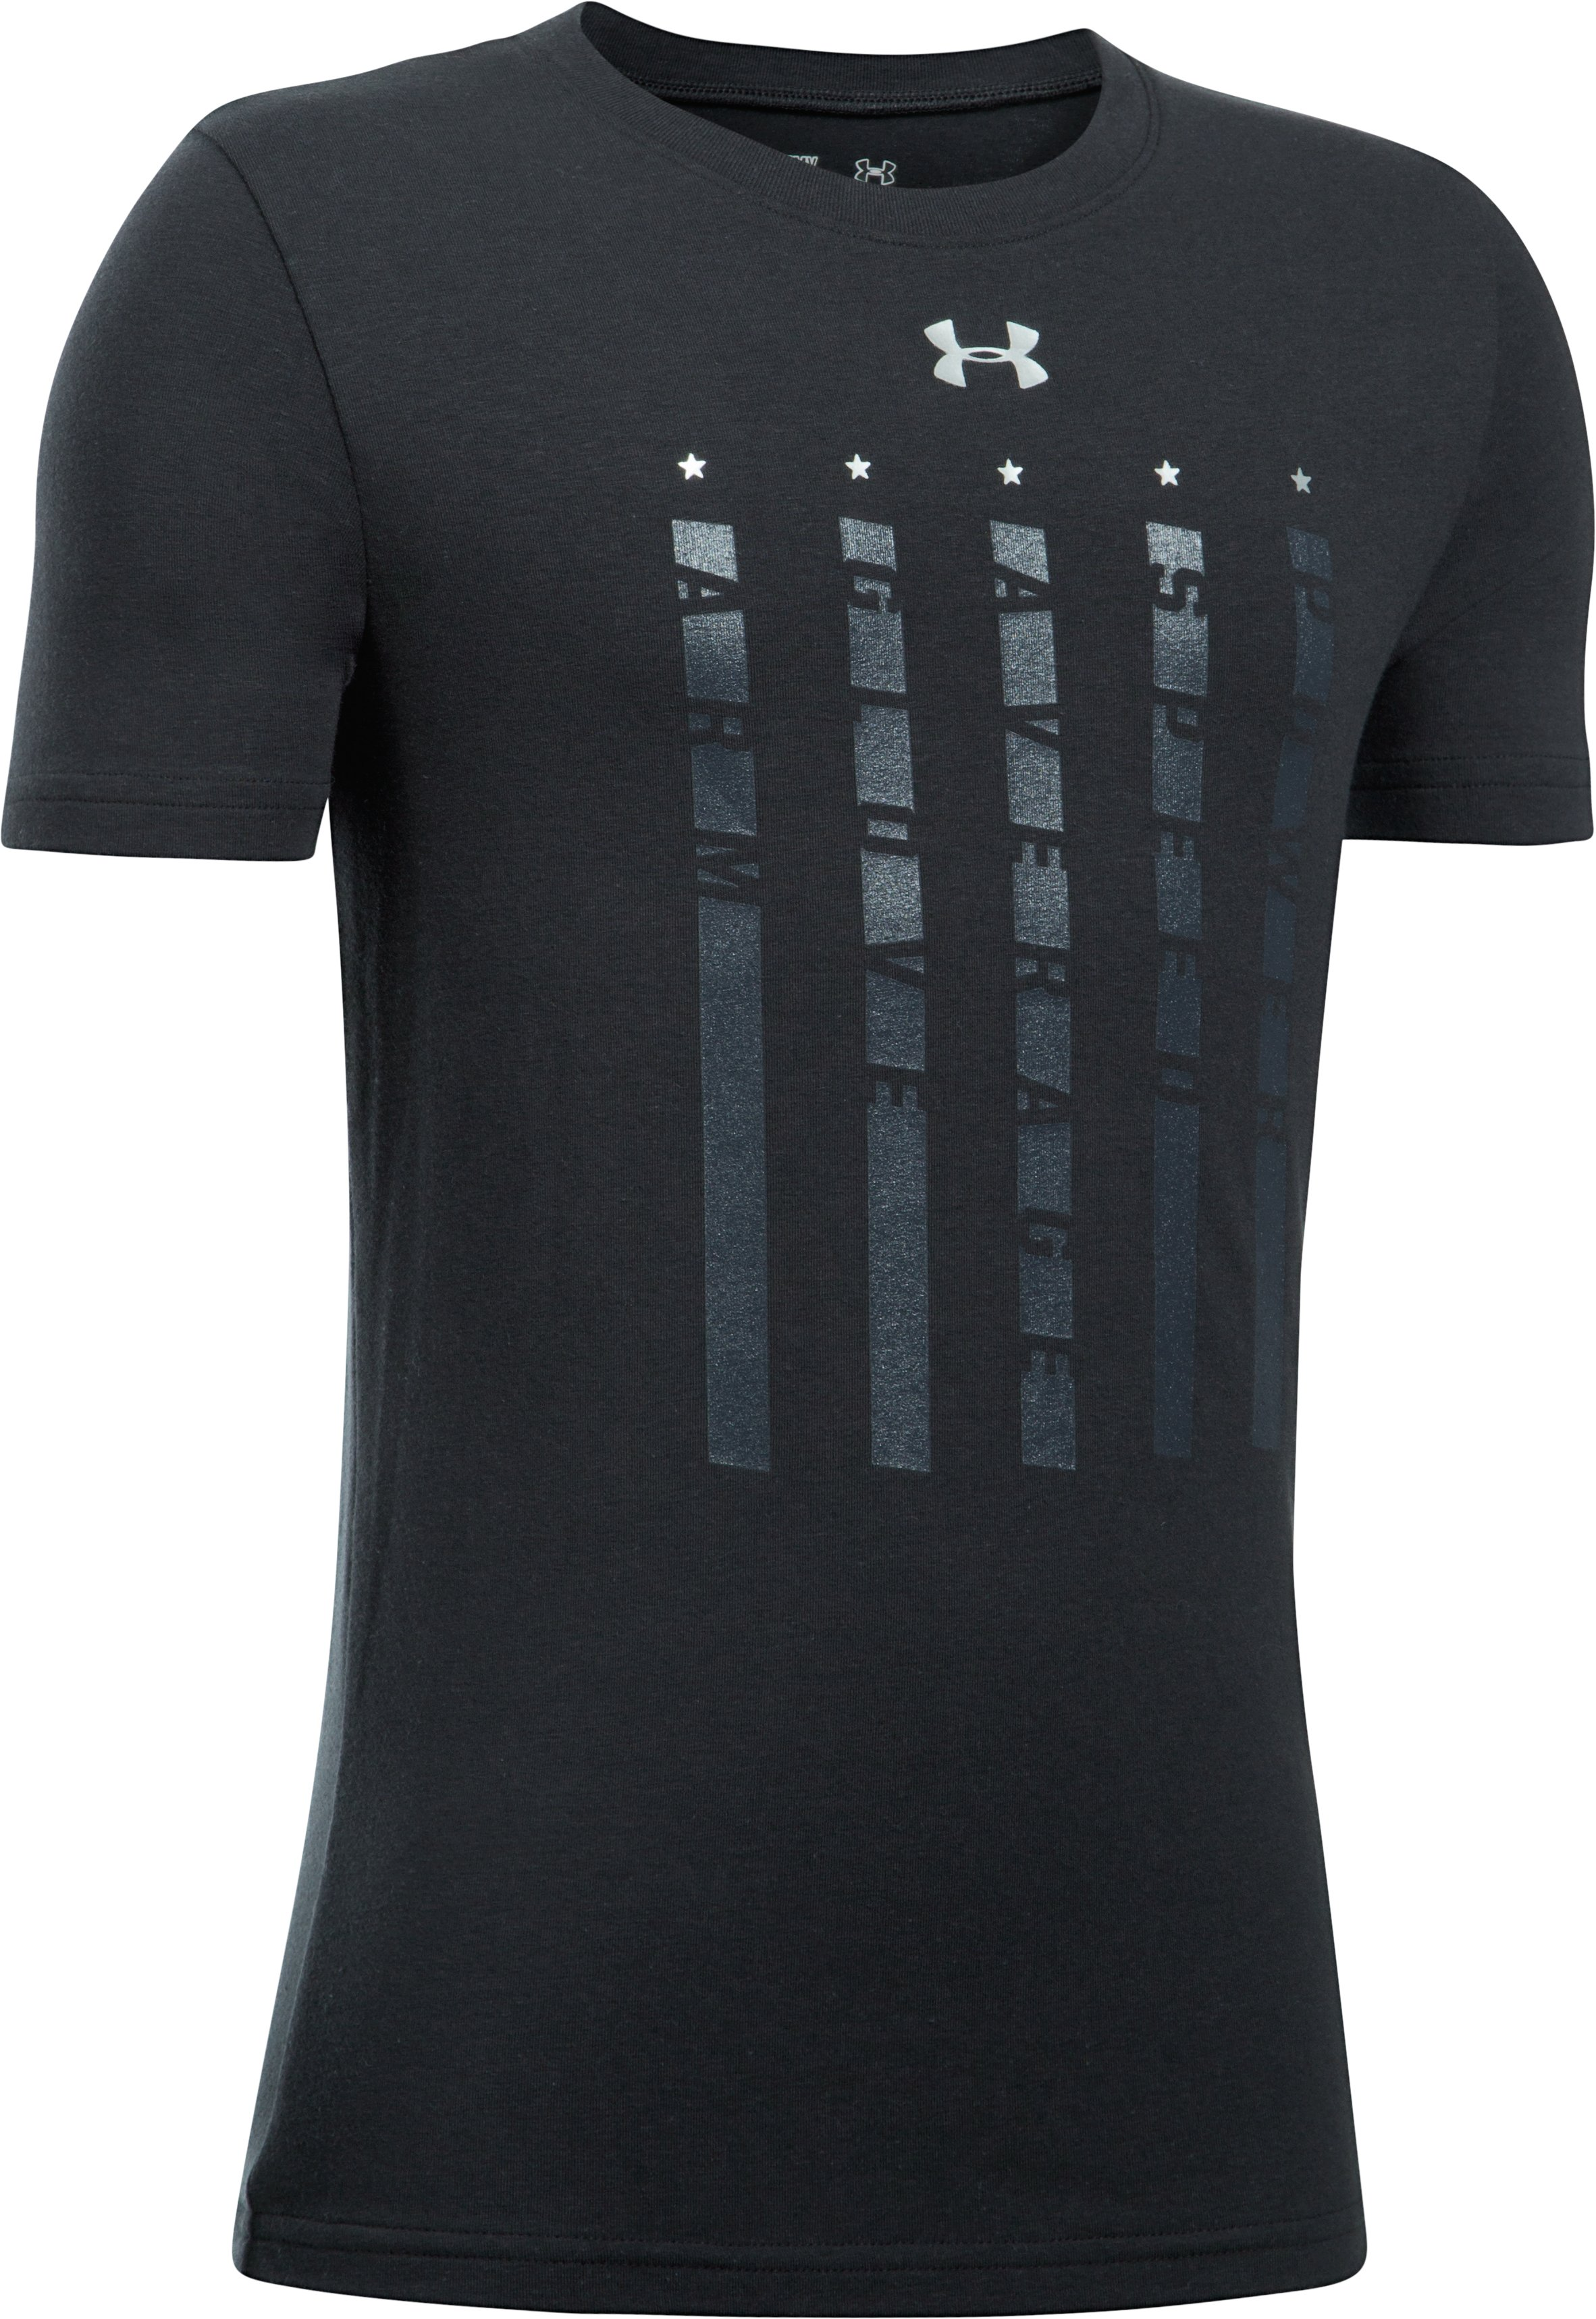 Boys' UA Heater 5 Star T-Shirt, Black